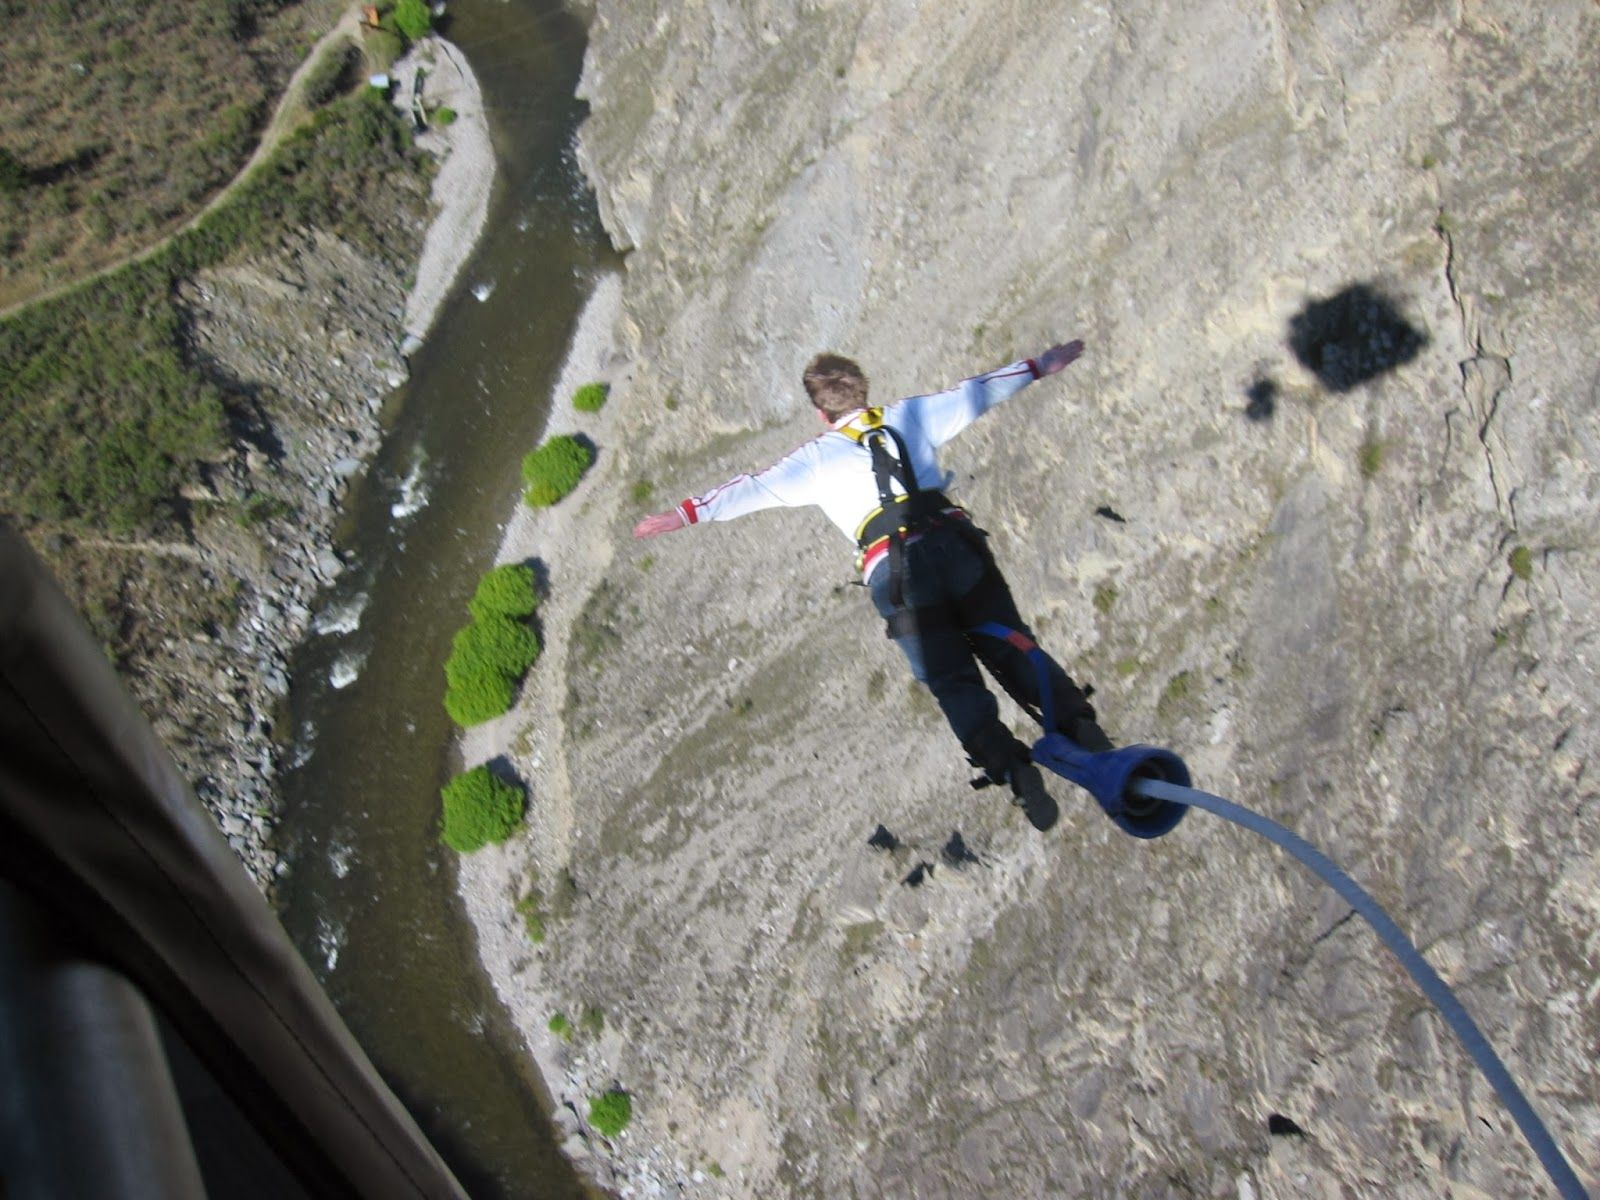 Bungeejumping In India Bungee Jumping Is An Activity For Thrills Seekers And Involves Jumping From A Tall Structure While Bungee Jumping New Zealand Nevis